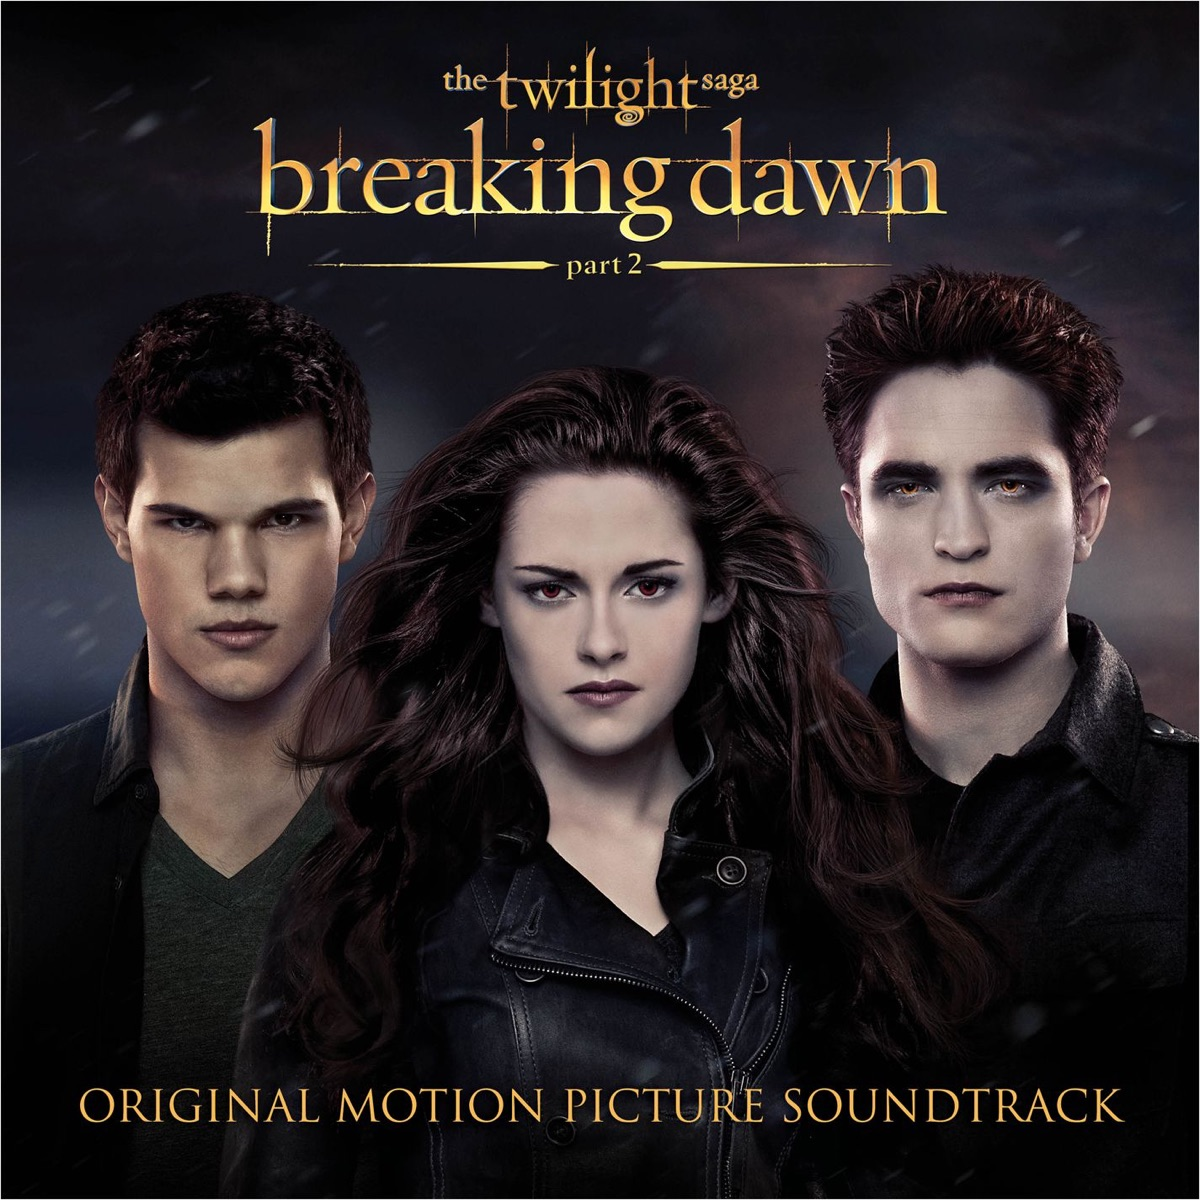 The Twilight Saga Breaking Dawn Pt 2 Original Motion Picture Soundtrack Various Artists CD cover